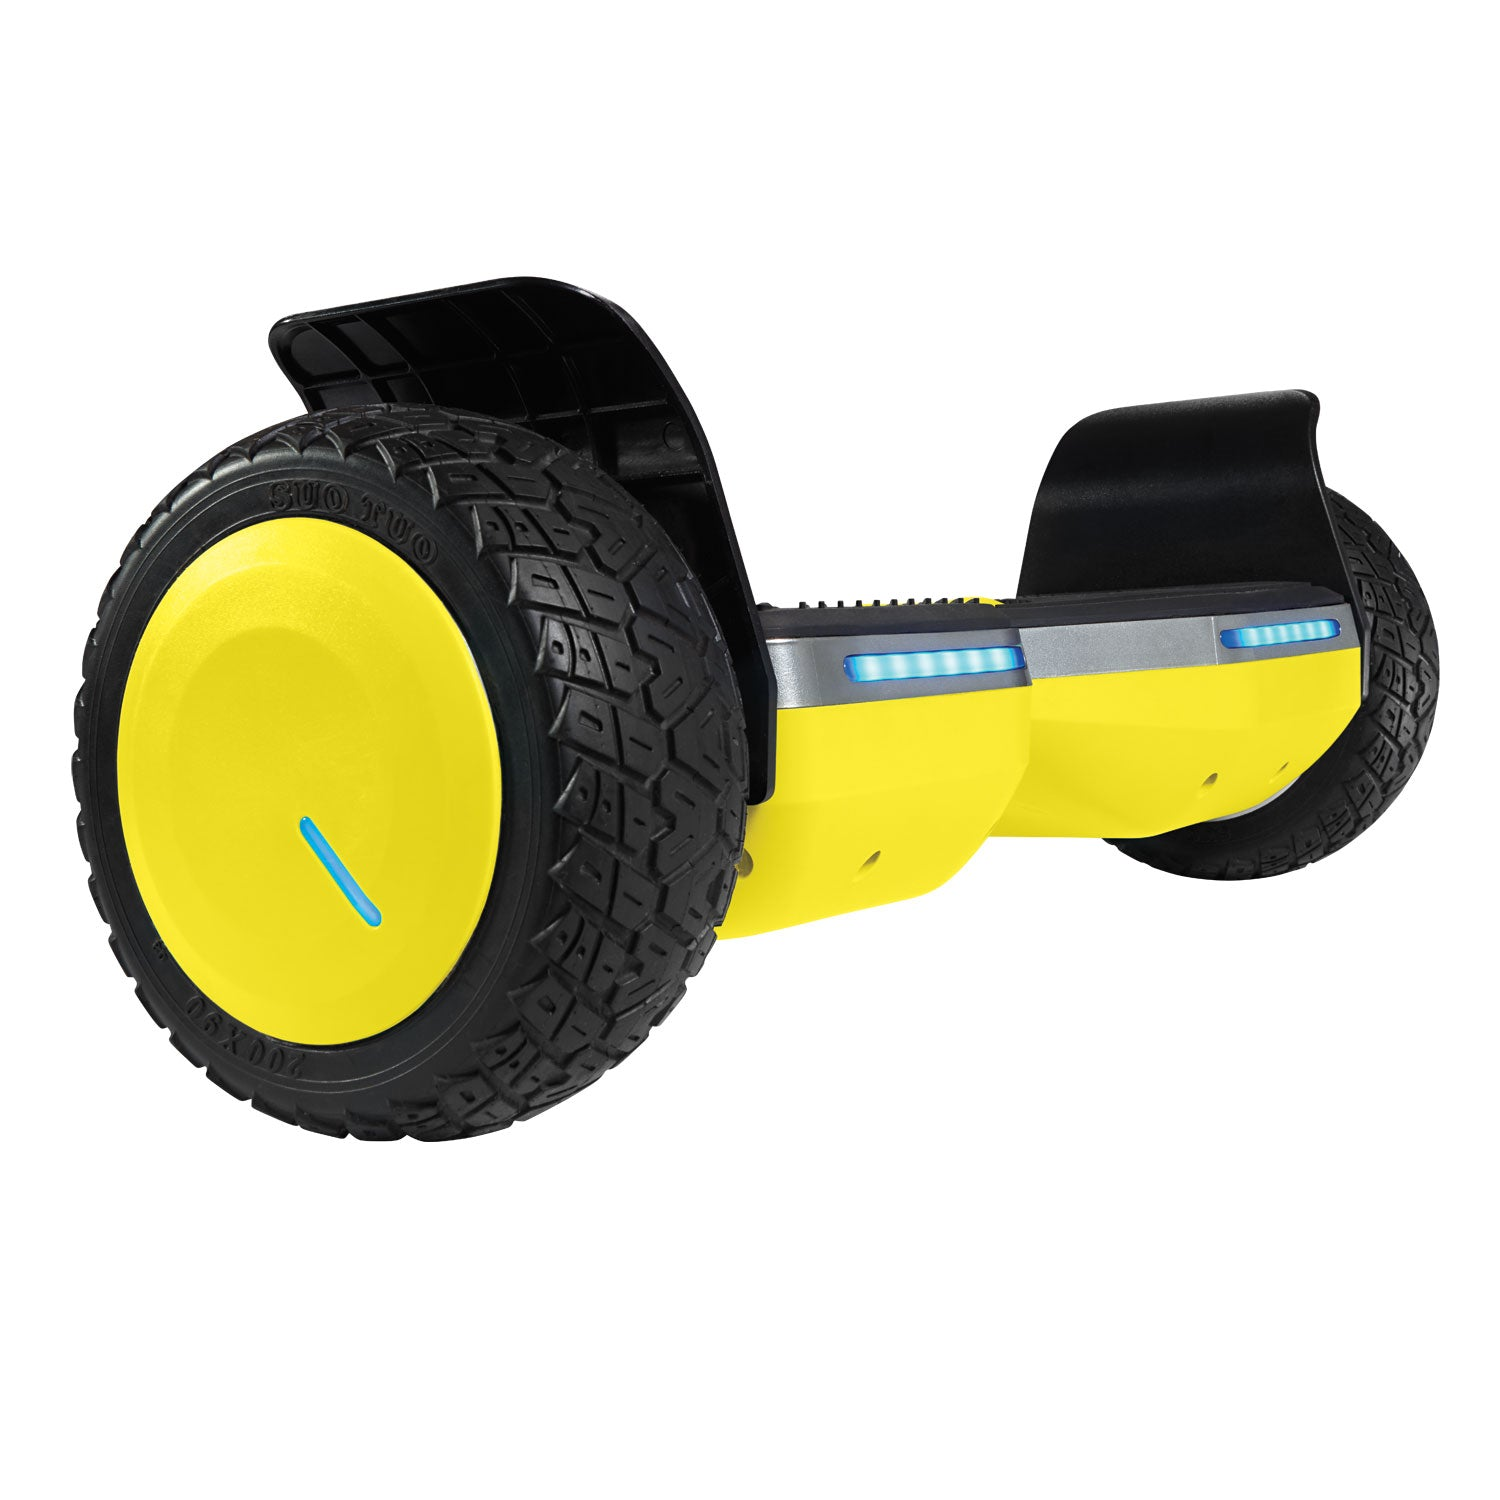 Yellow Main Image SRX Pro all terrain hoverboard with bluetooth